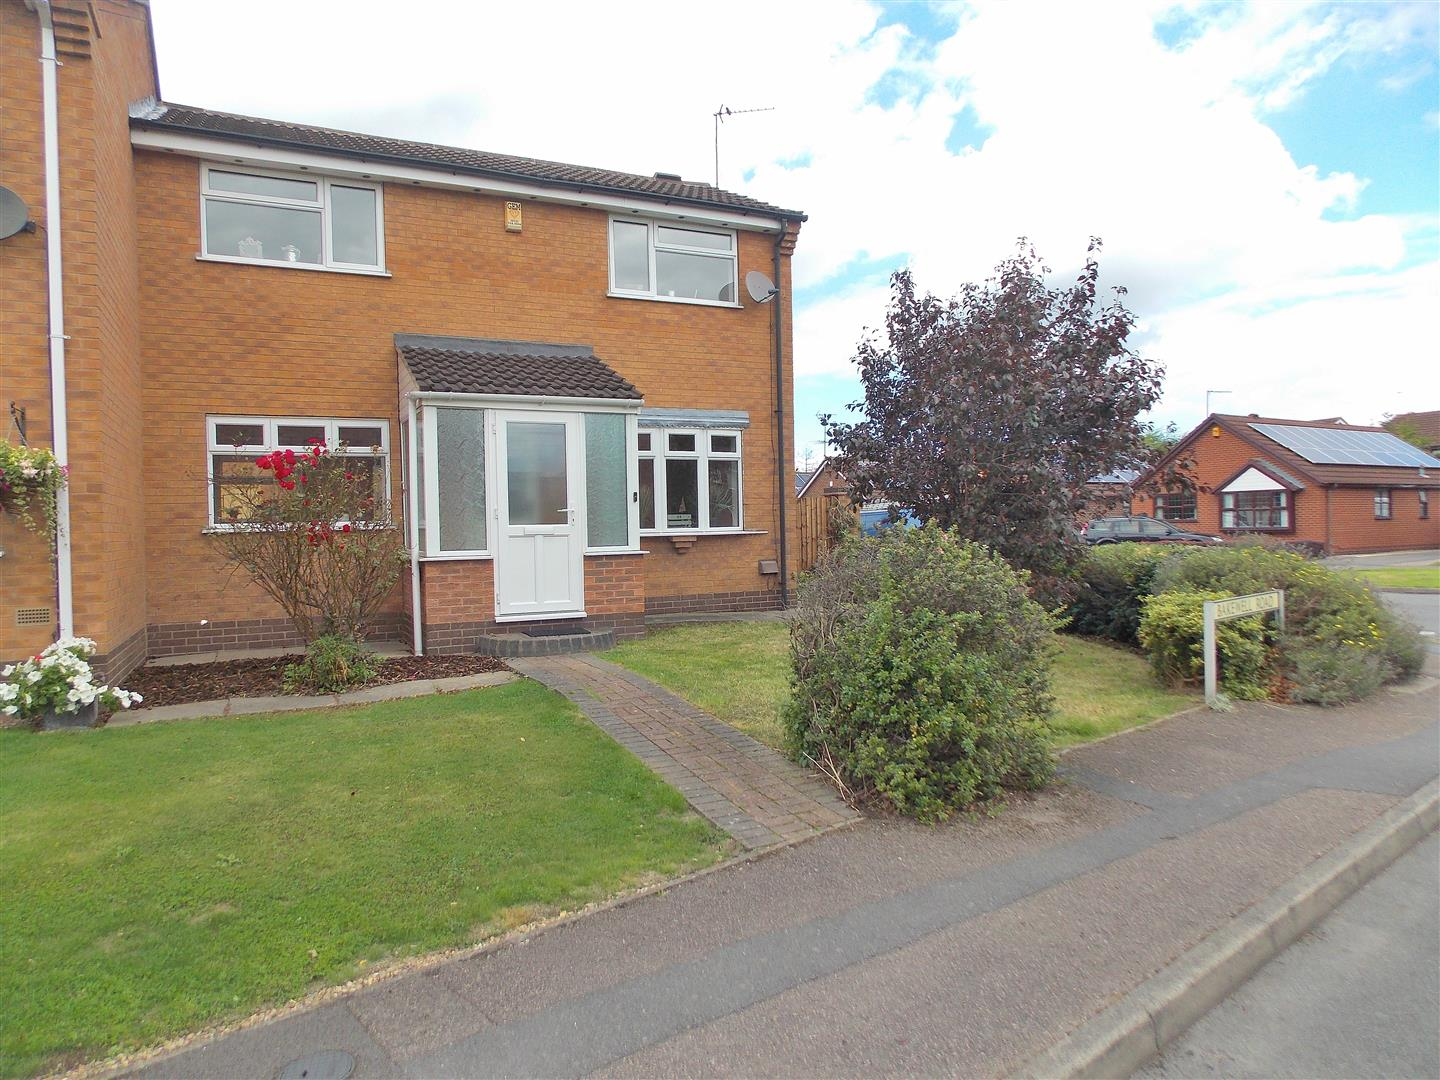 3 Bedrooms Semi Detached House for sale in Bakewell Road, Long Eaton, Nottingham